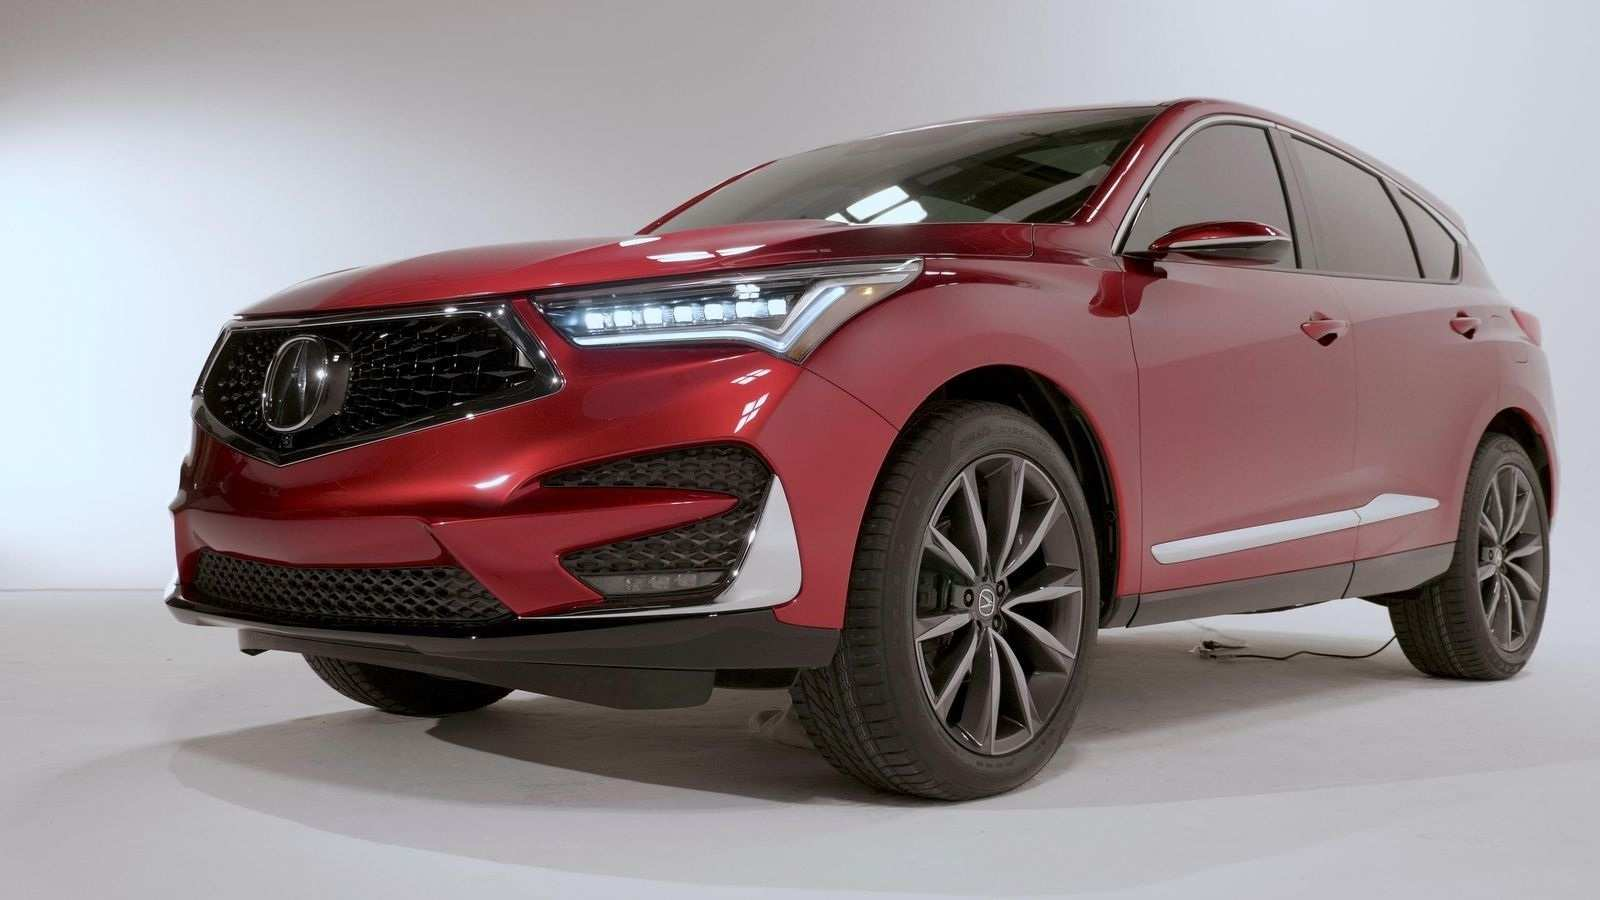 97 All New When Will Acura Rdx 2020 Be Available Price And Release Date